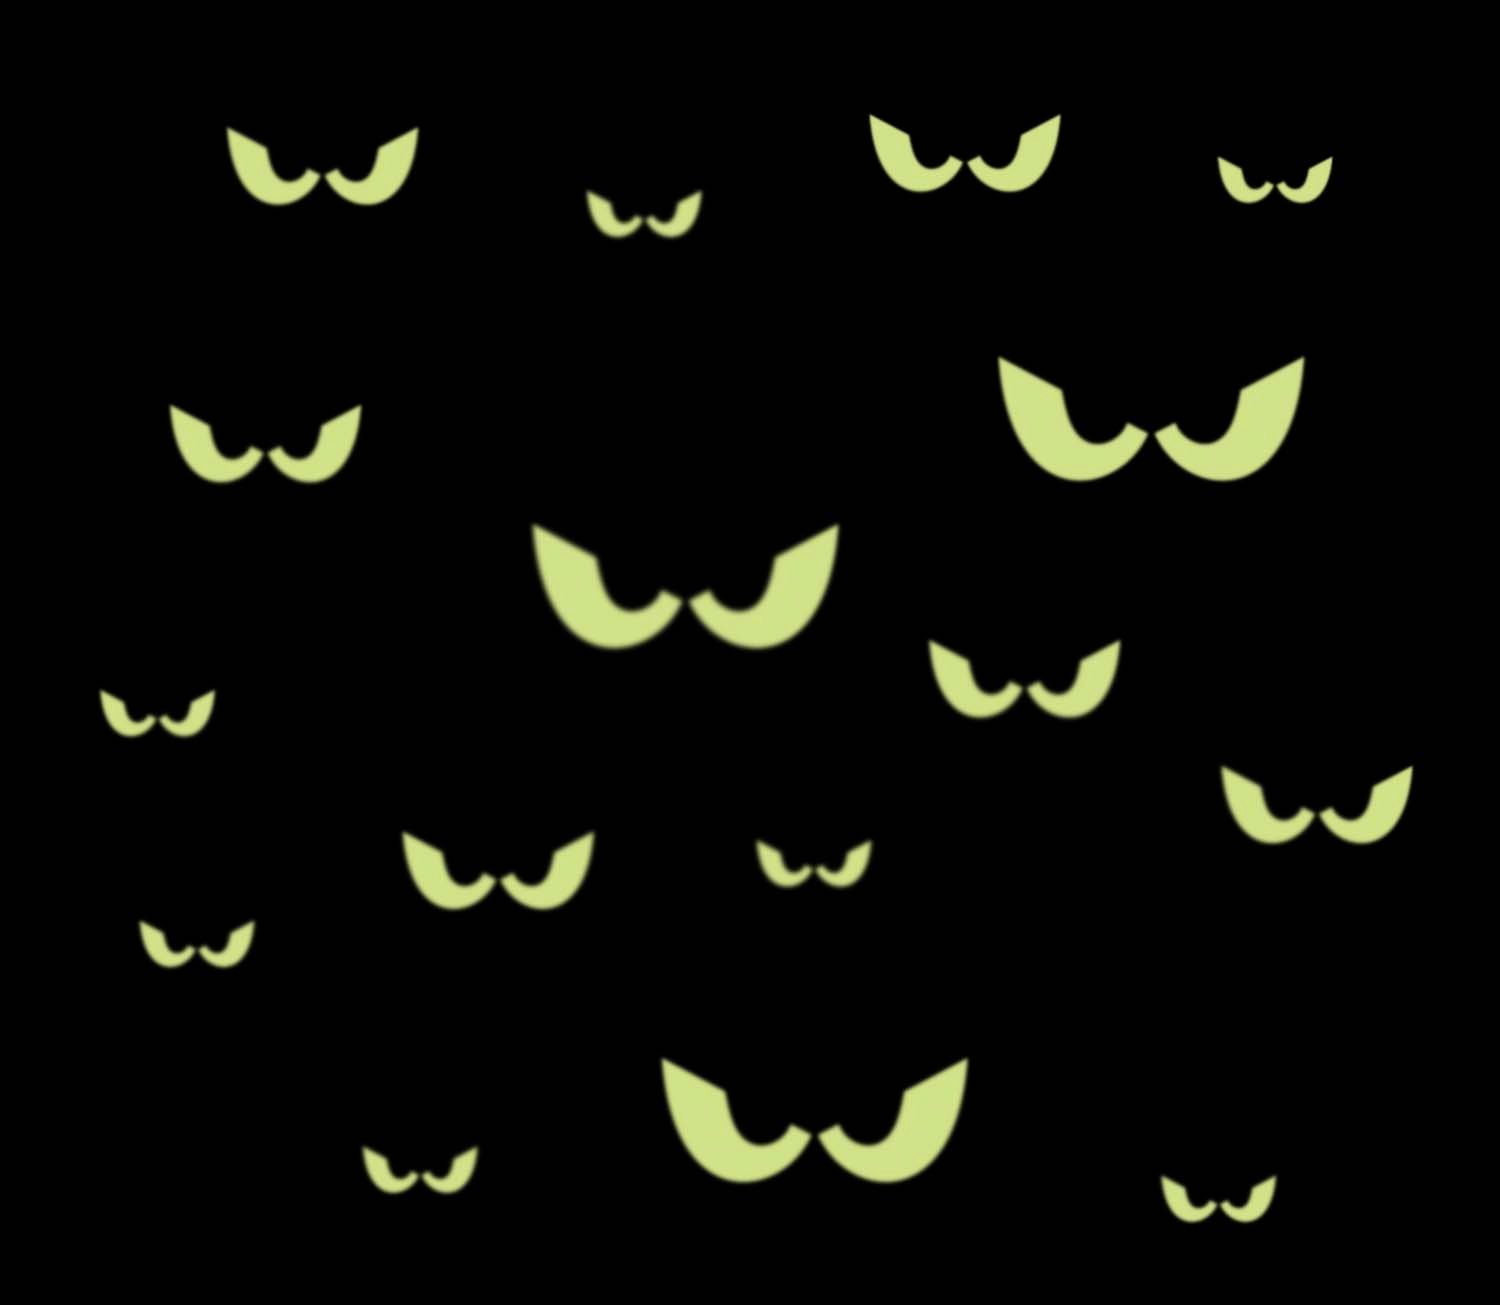 Spooky eyes clipart blavk and white - ClipartFest